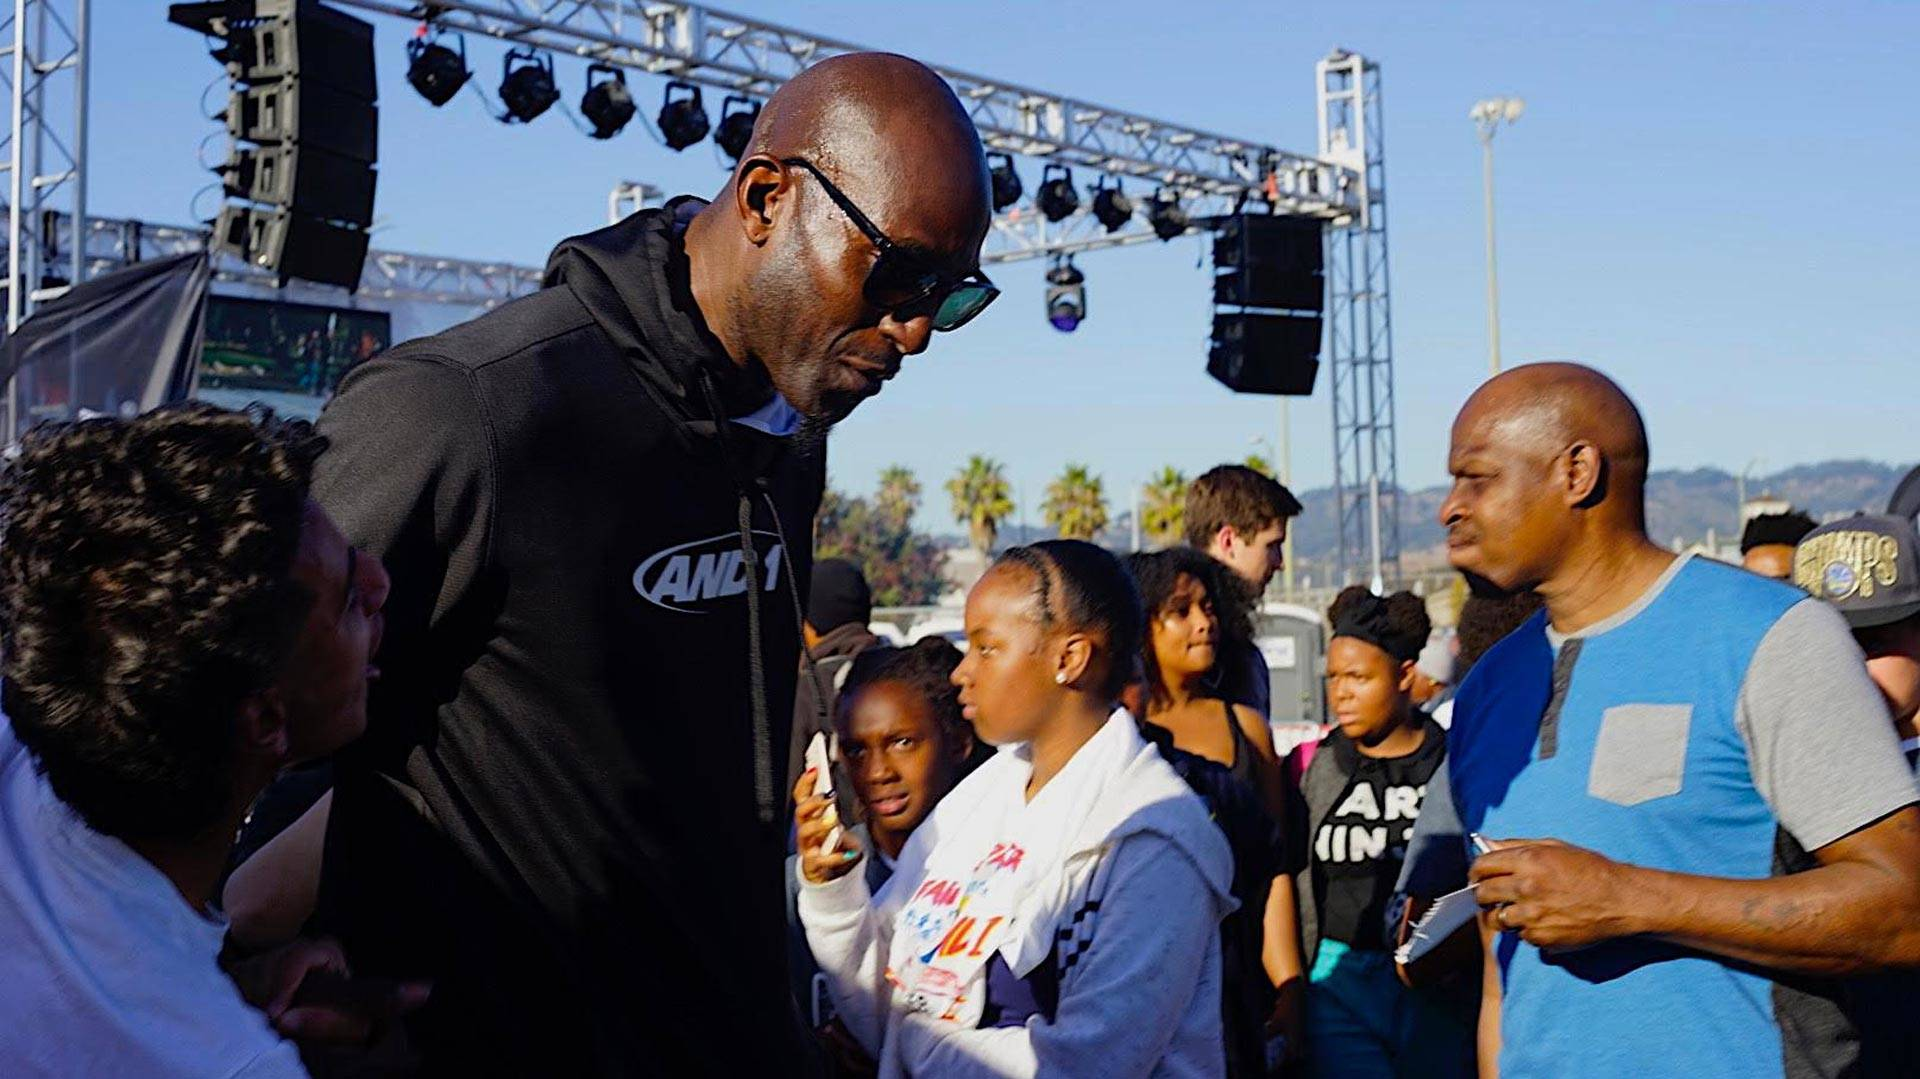 Kevin Garnett talks to kids at DeFremery Park in West Oakland, Oct. 12, 2018. Pendarvis Harshaw